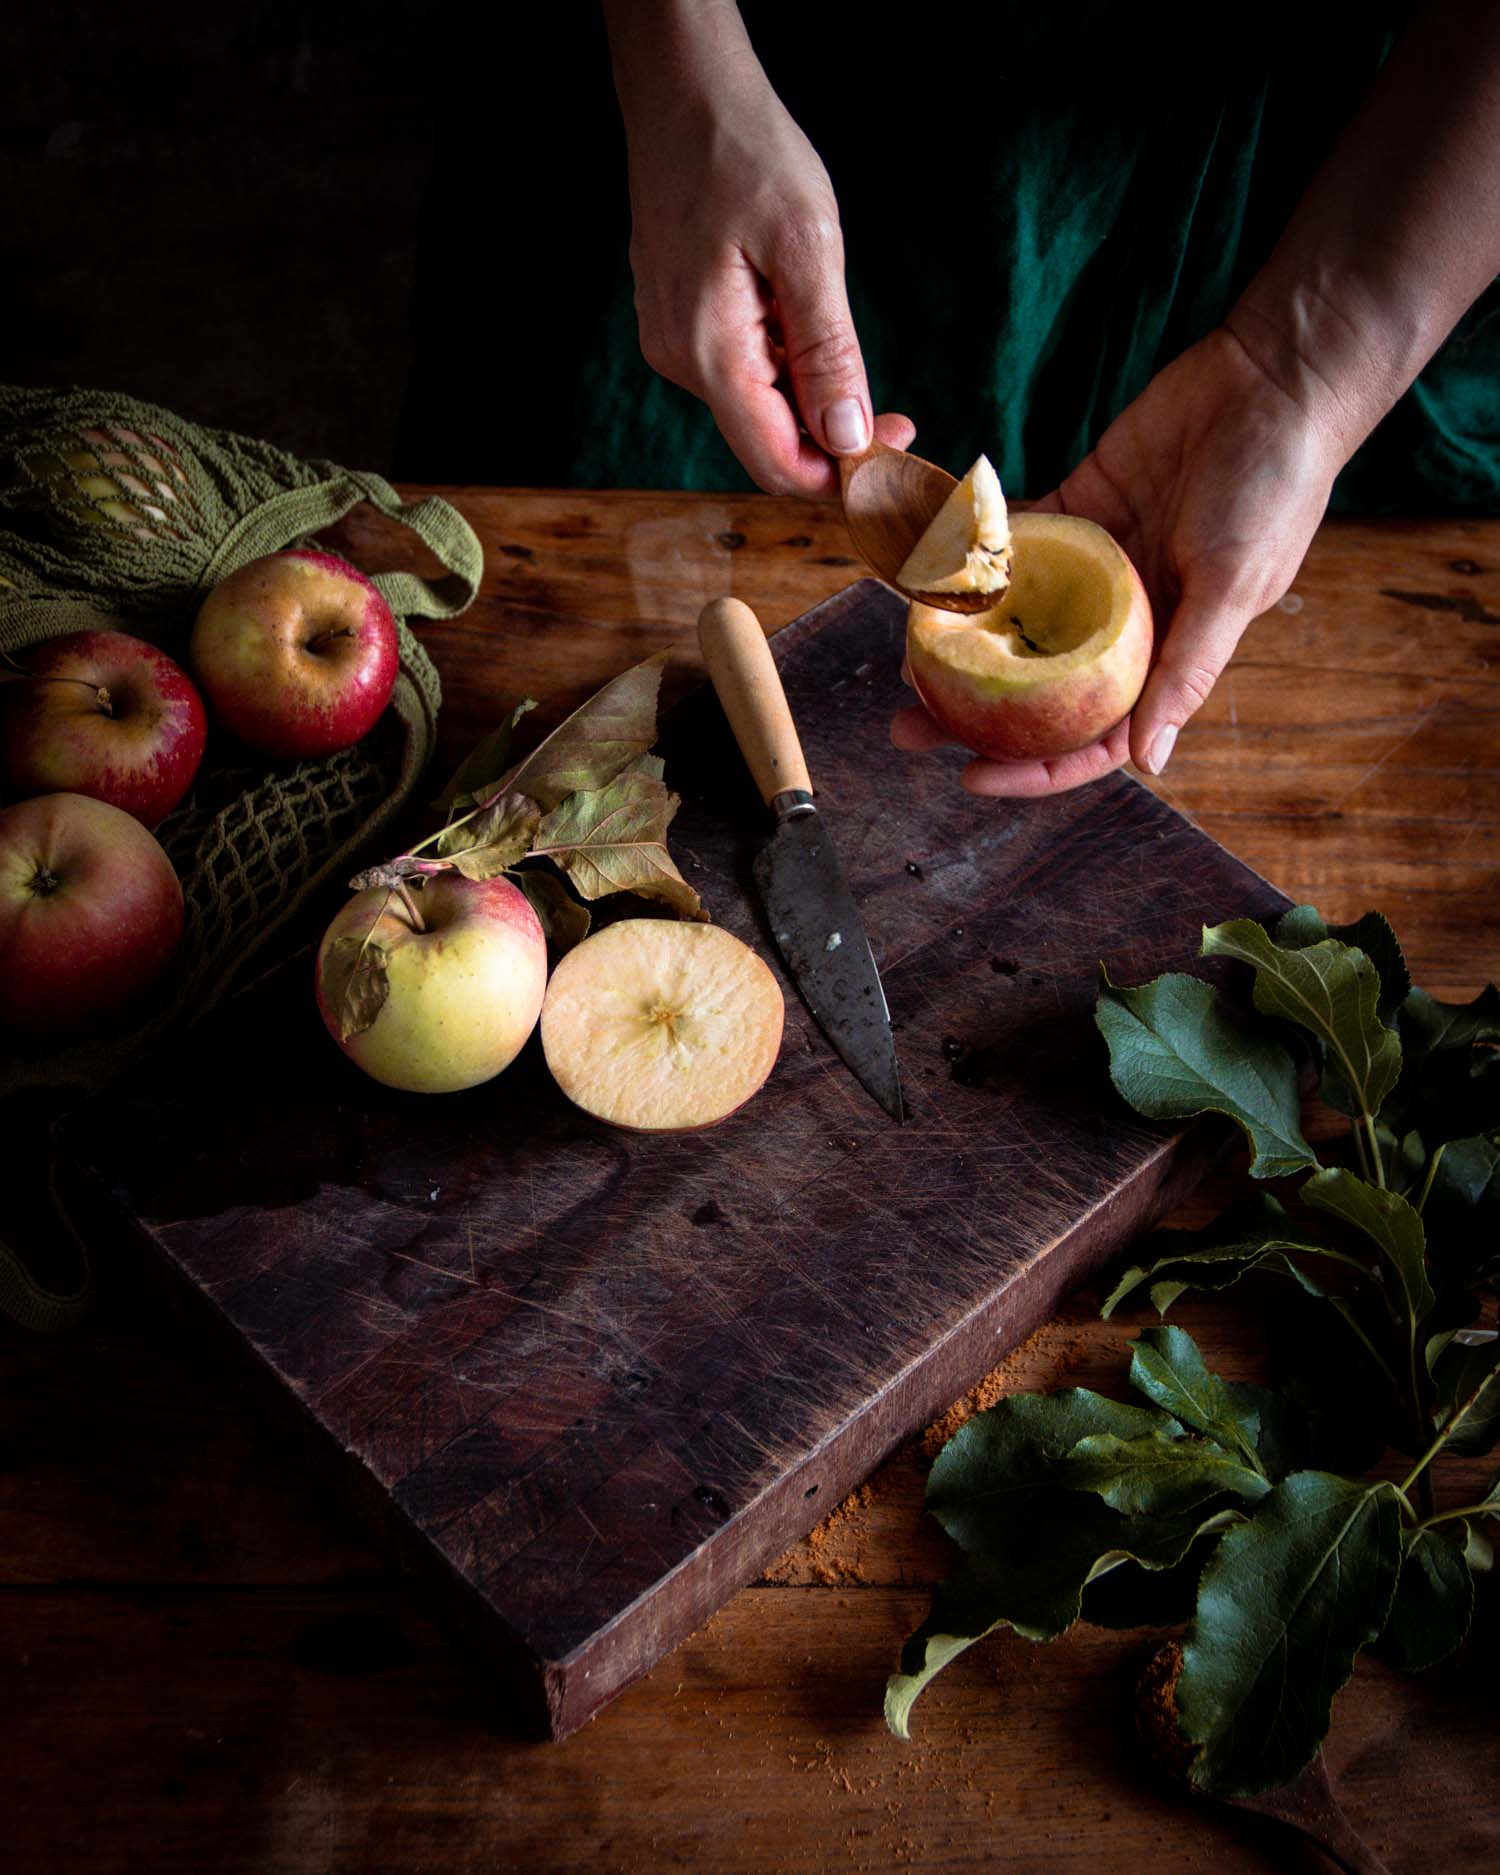 Coring apples to fill with granola